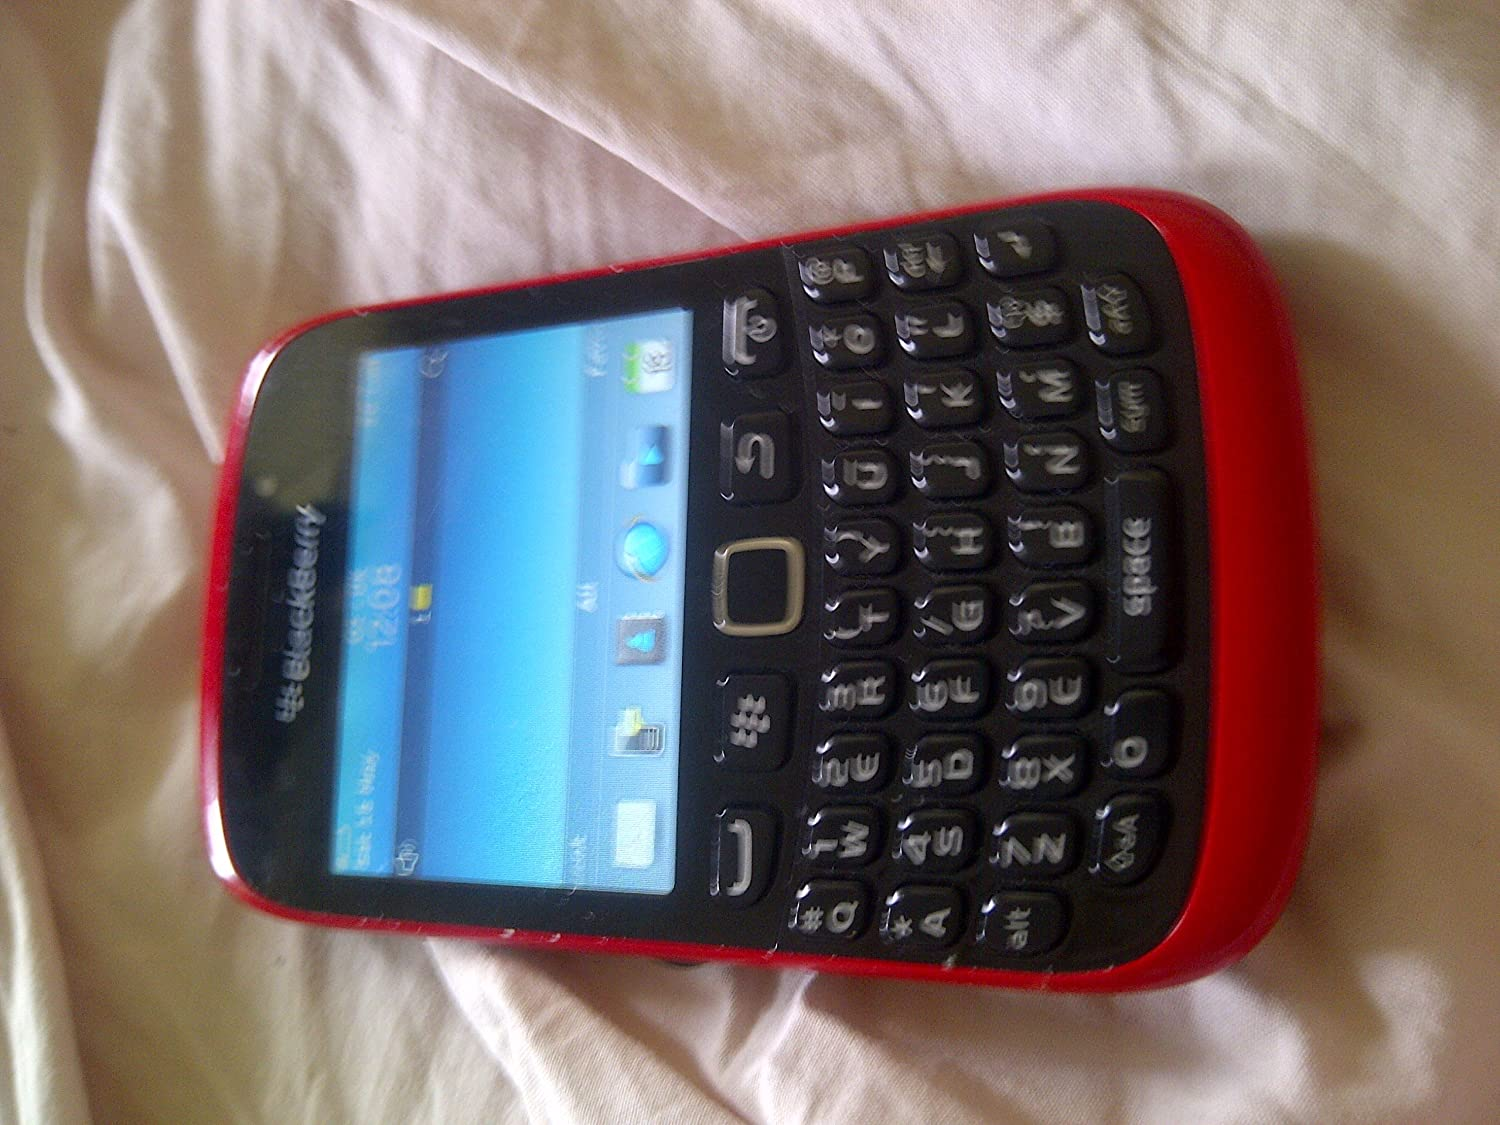 Blackberry Curve 9320 Red Blackberry 9320 in Red on o2